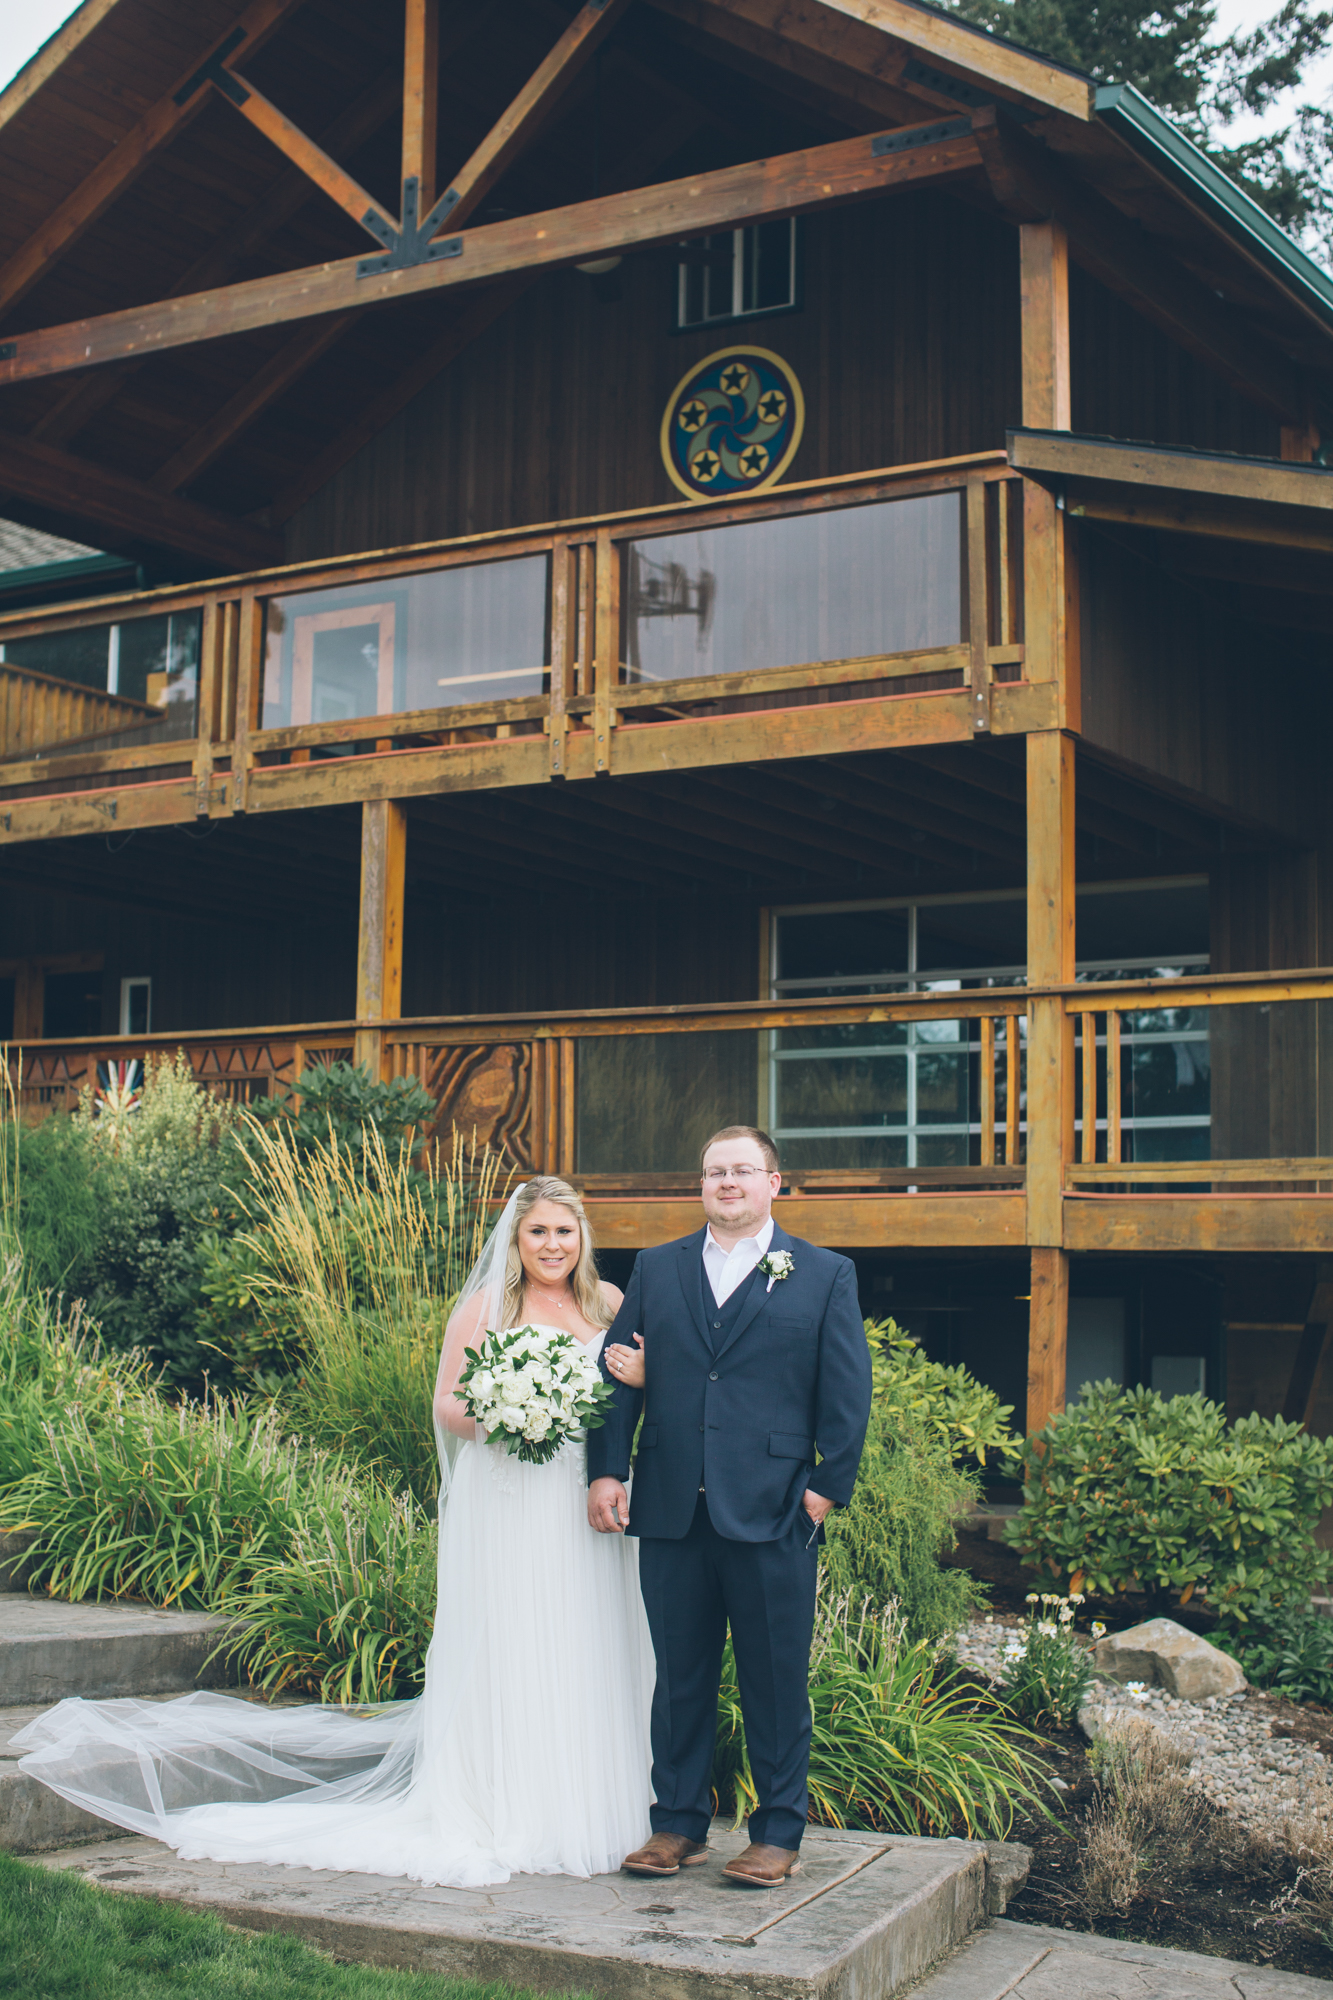 Bridalbliss.com | Portland Wedding | Oregon Event Planning and Design | Aniko Photography